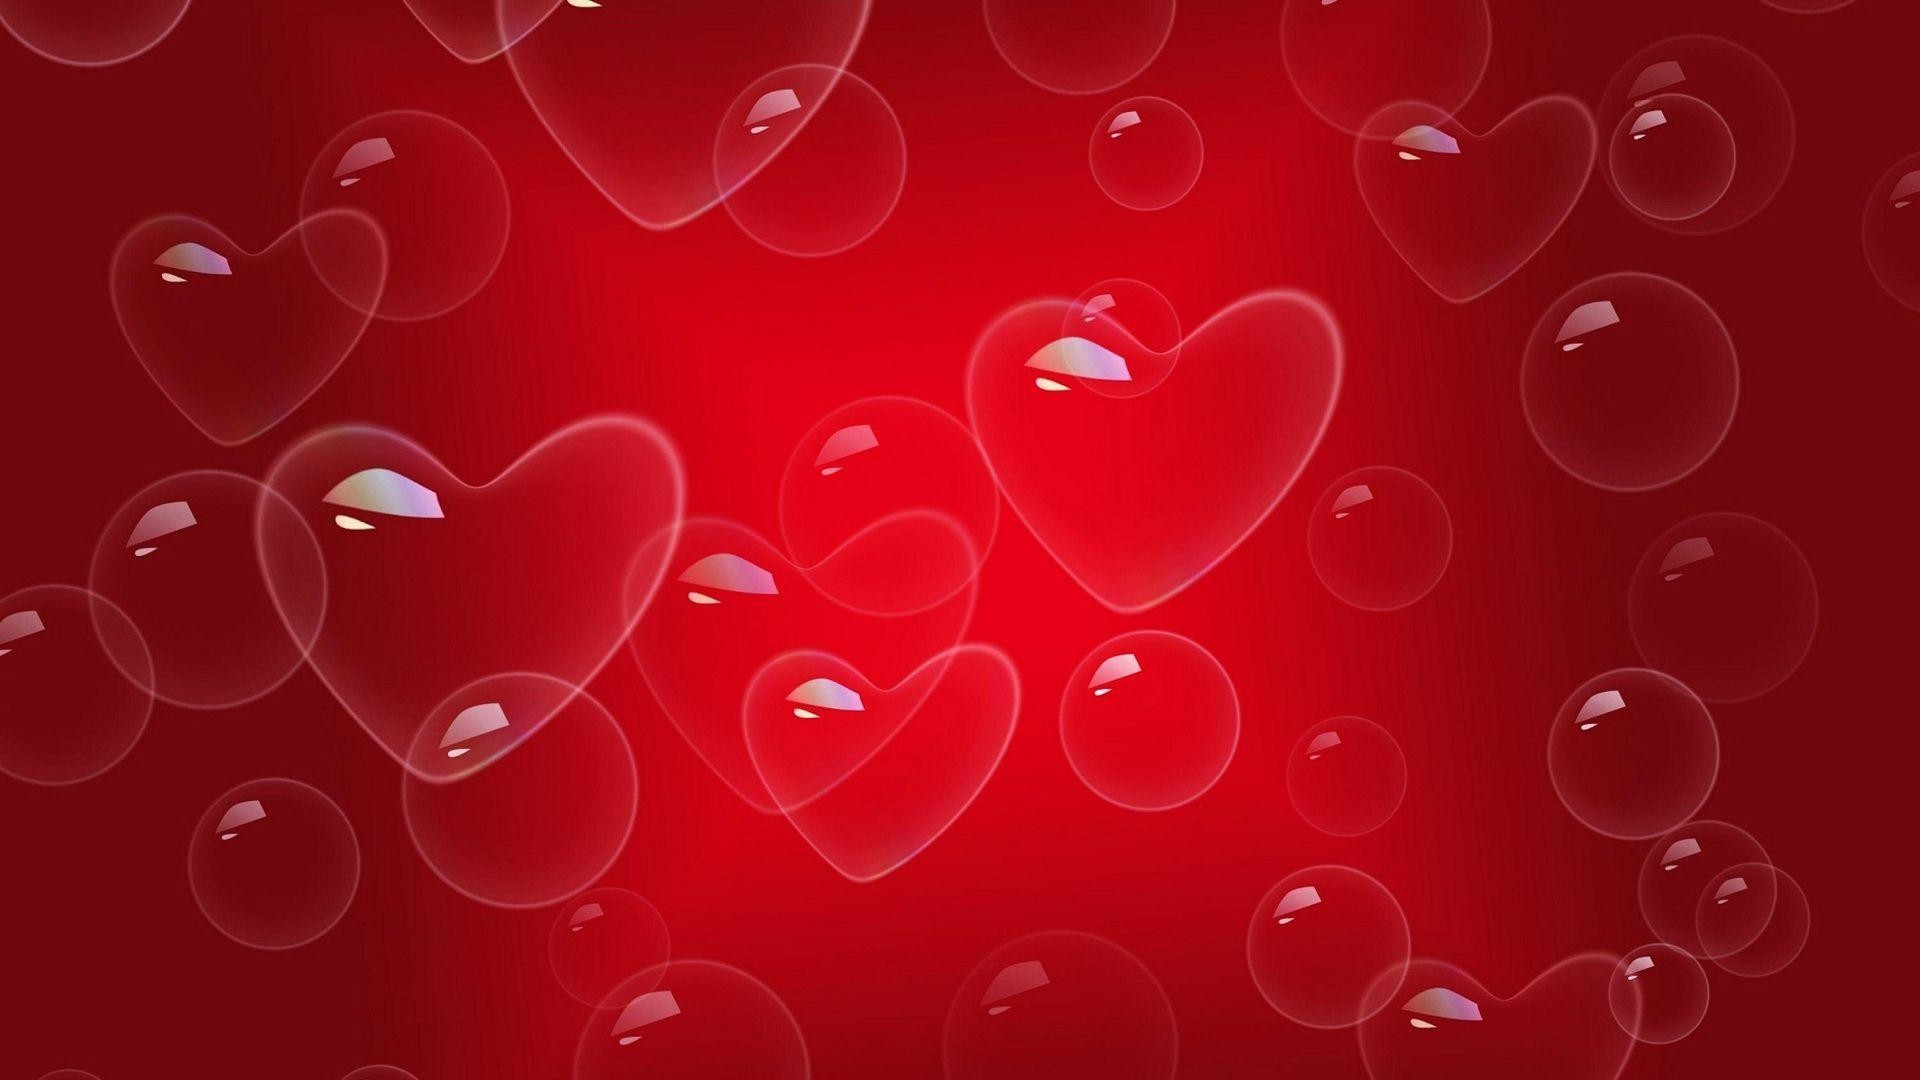 Red Heart Love Wallpaper: Red Heart Wallpapers ·①